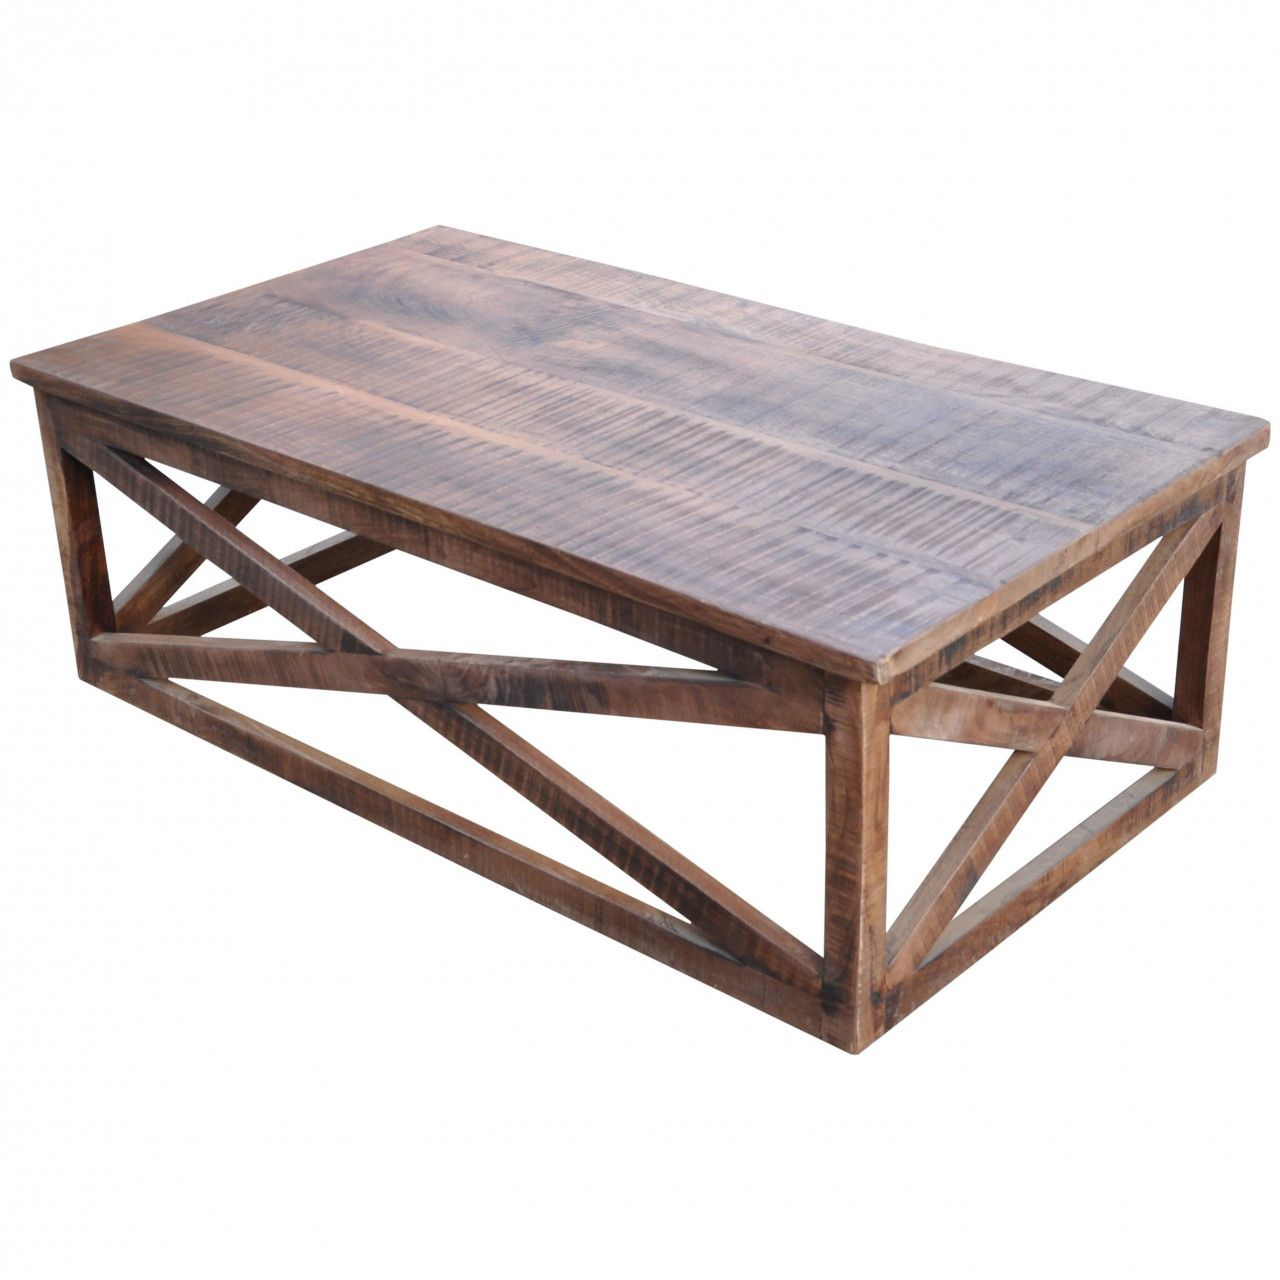 28 Best Of Indian Carved Wood Coffee Table 2020 Coffee Table India Coffee Table Rectangle Rectangle Coffee Table Wood [ 1280 x 1280 Pixel ]